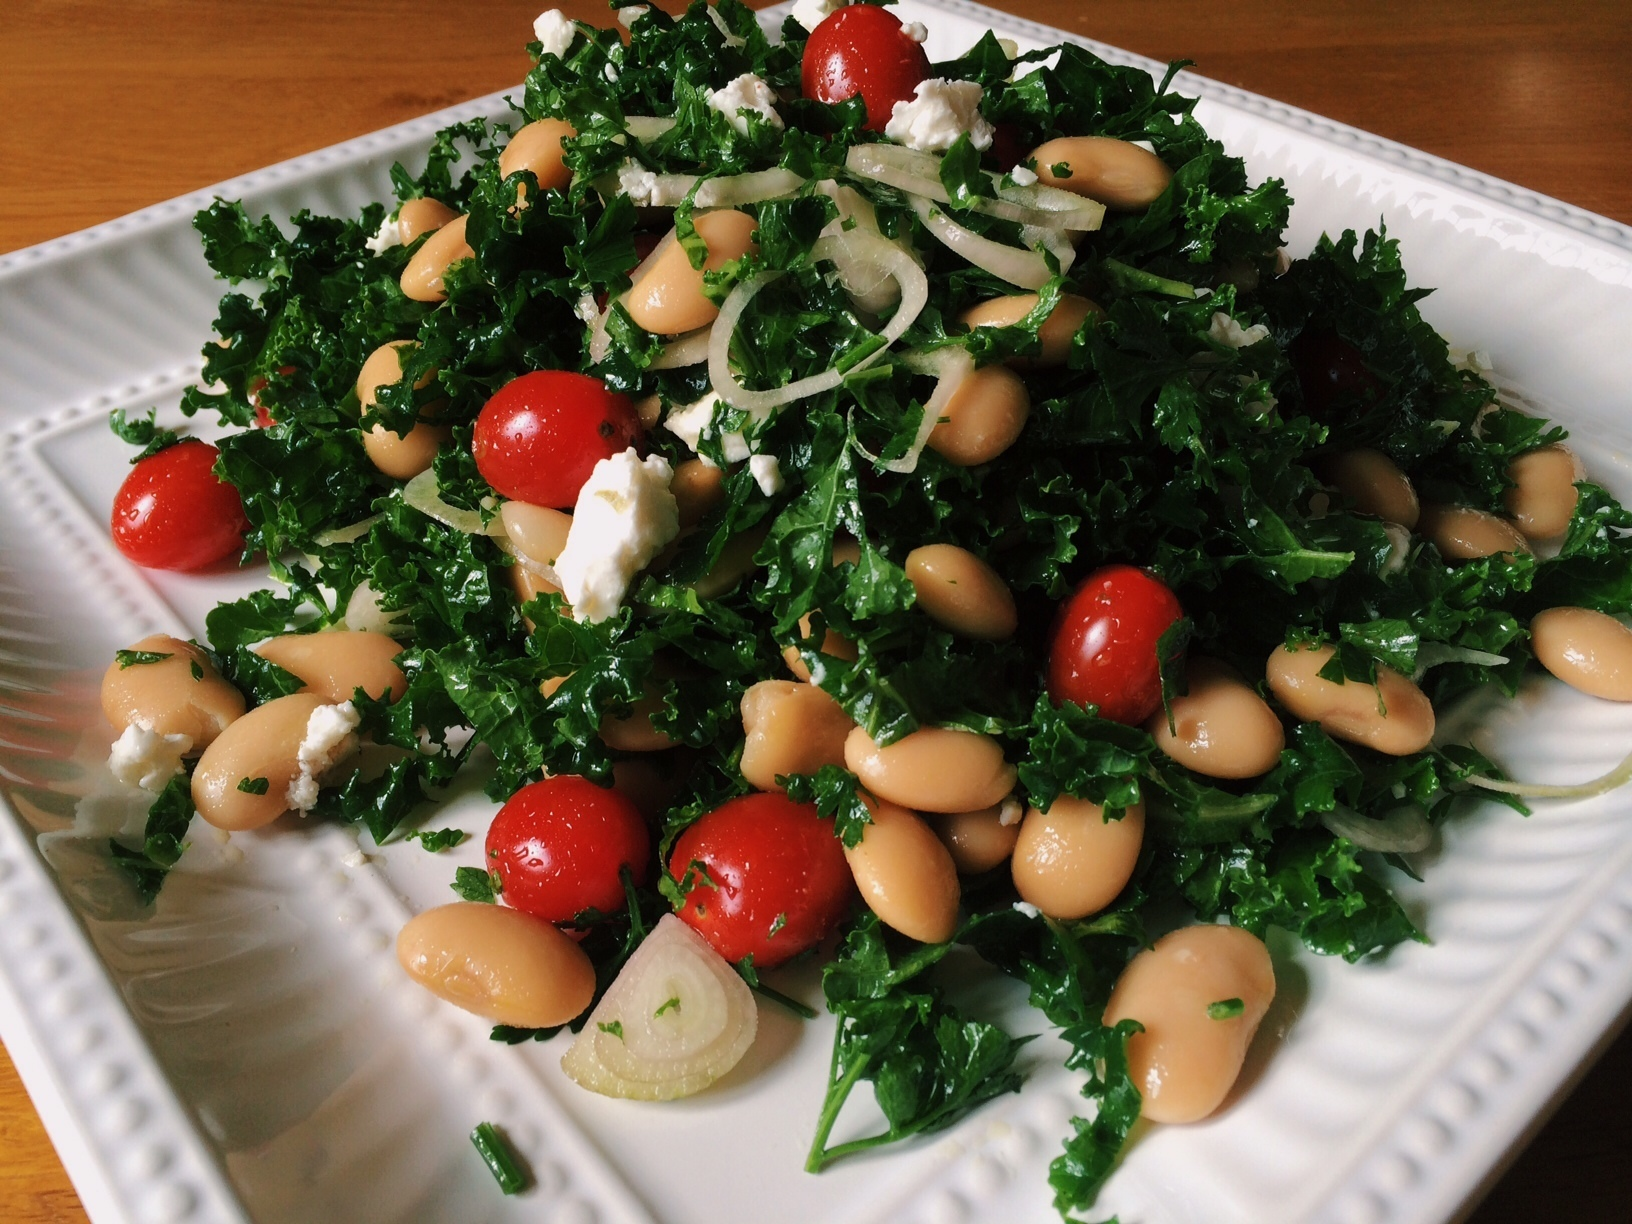 Kale Salad with Butter Beans and Cherry Tomatoes